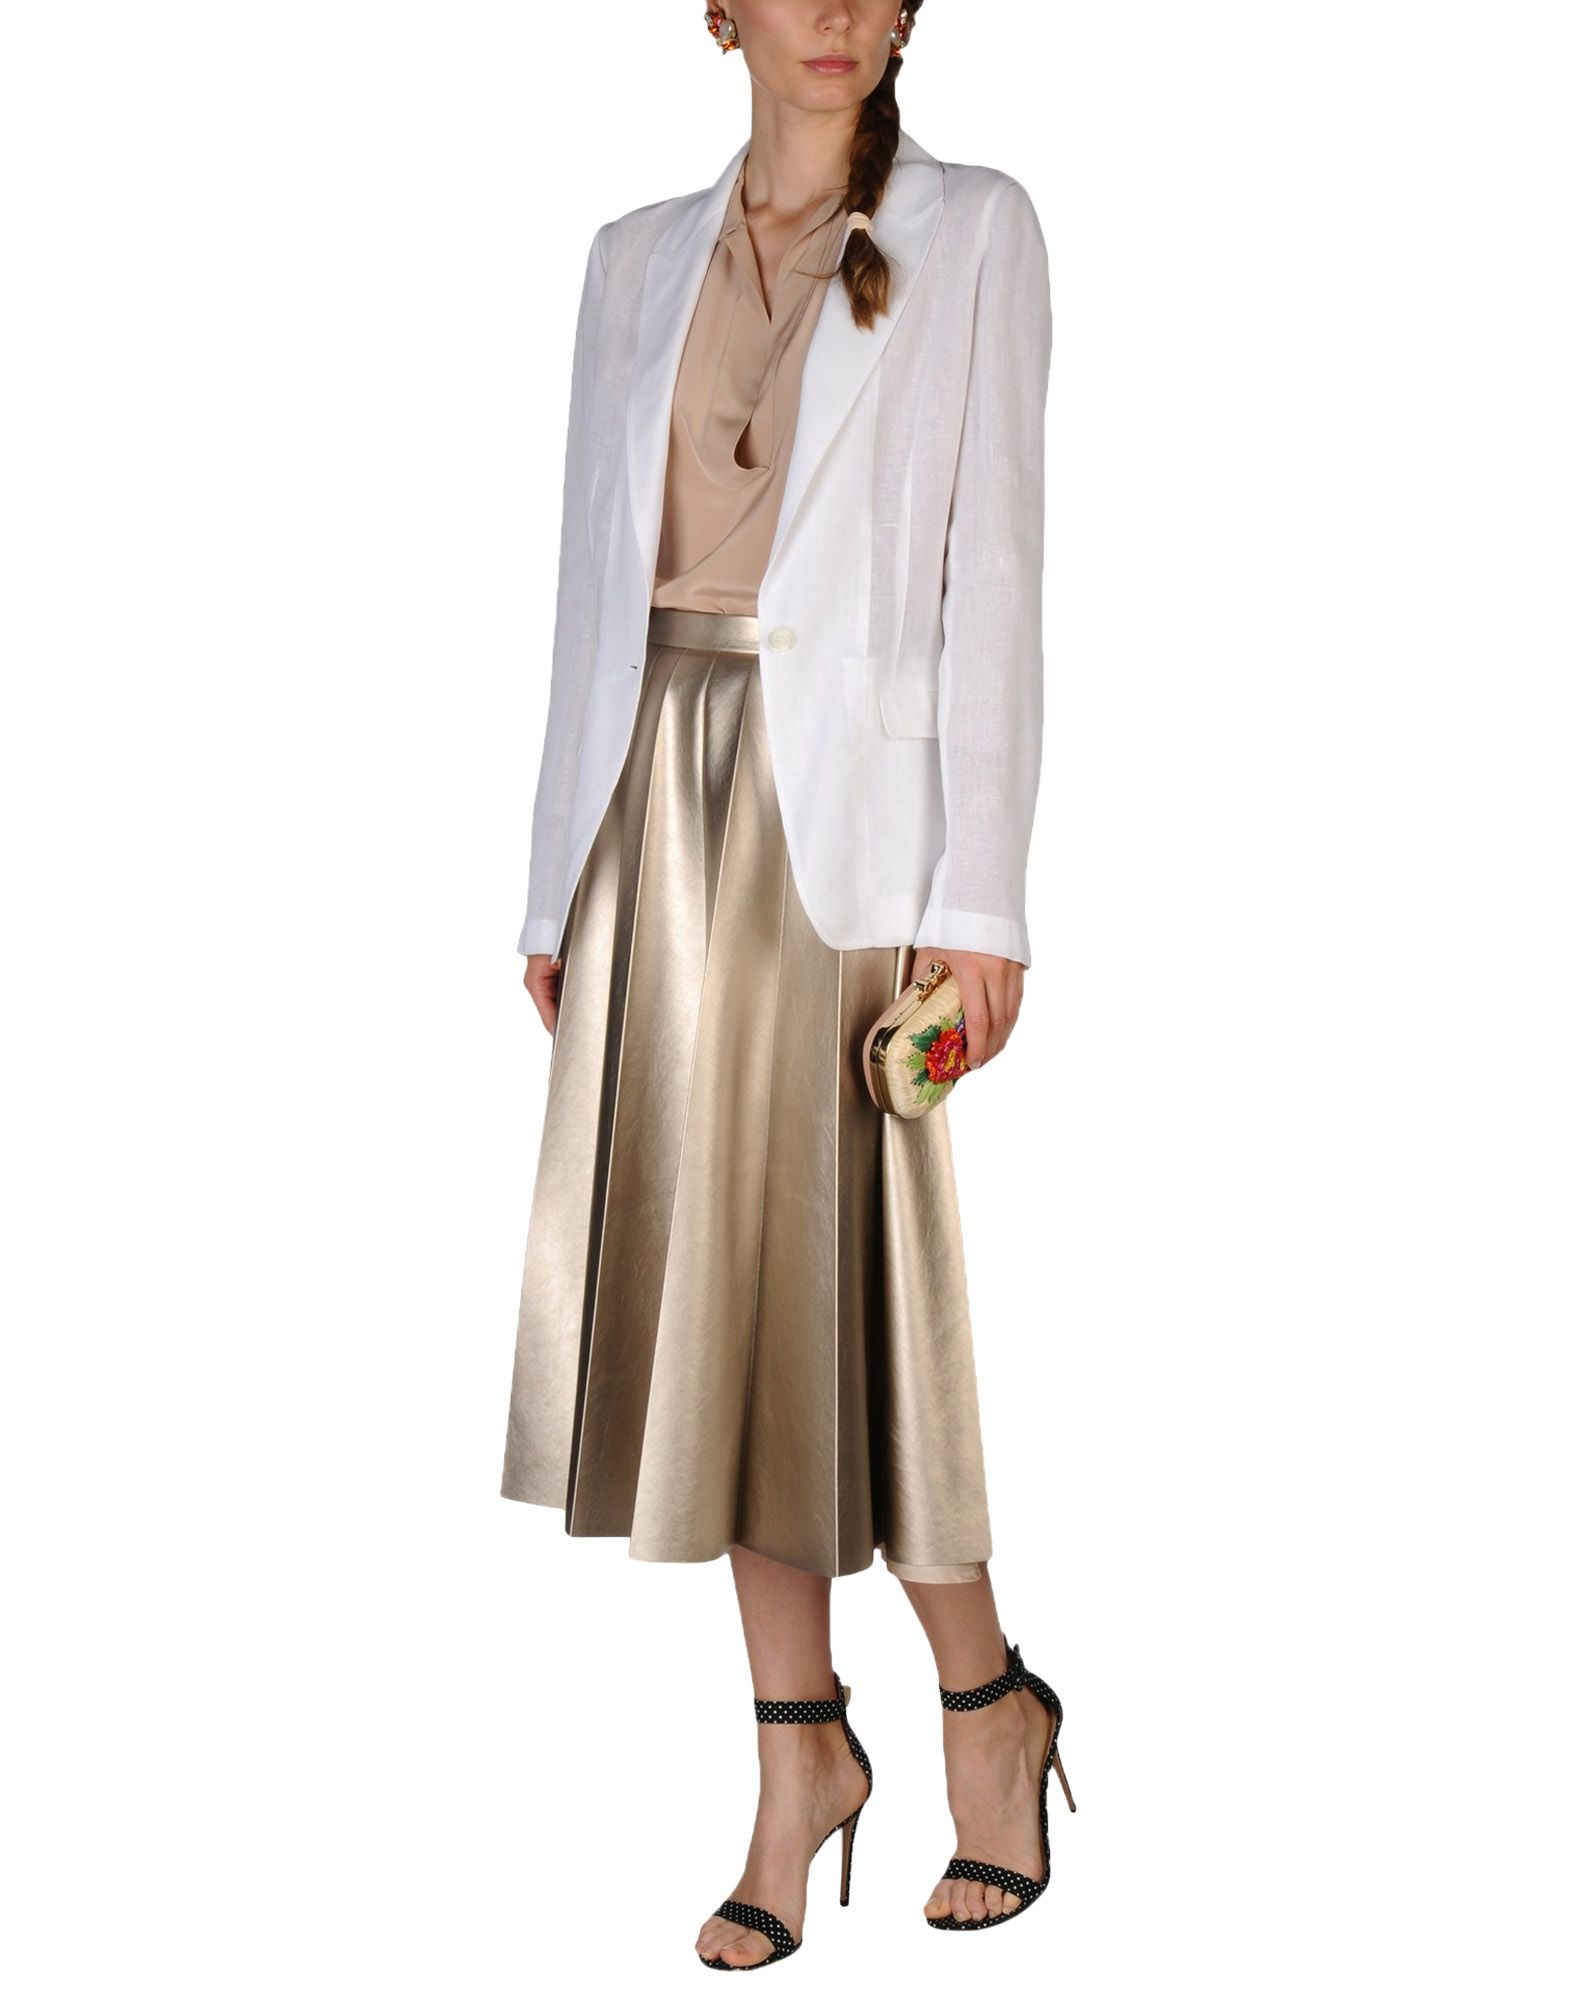 michael kors blazer in multicolor white lyst. Black Bedroom Furniture Sets. Home Design Ideas